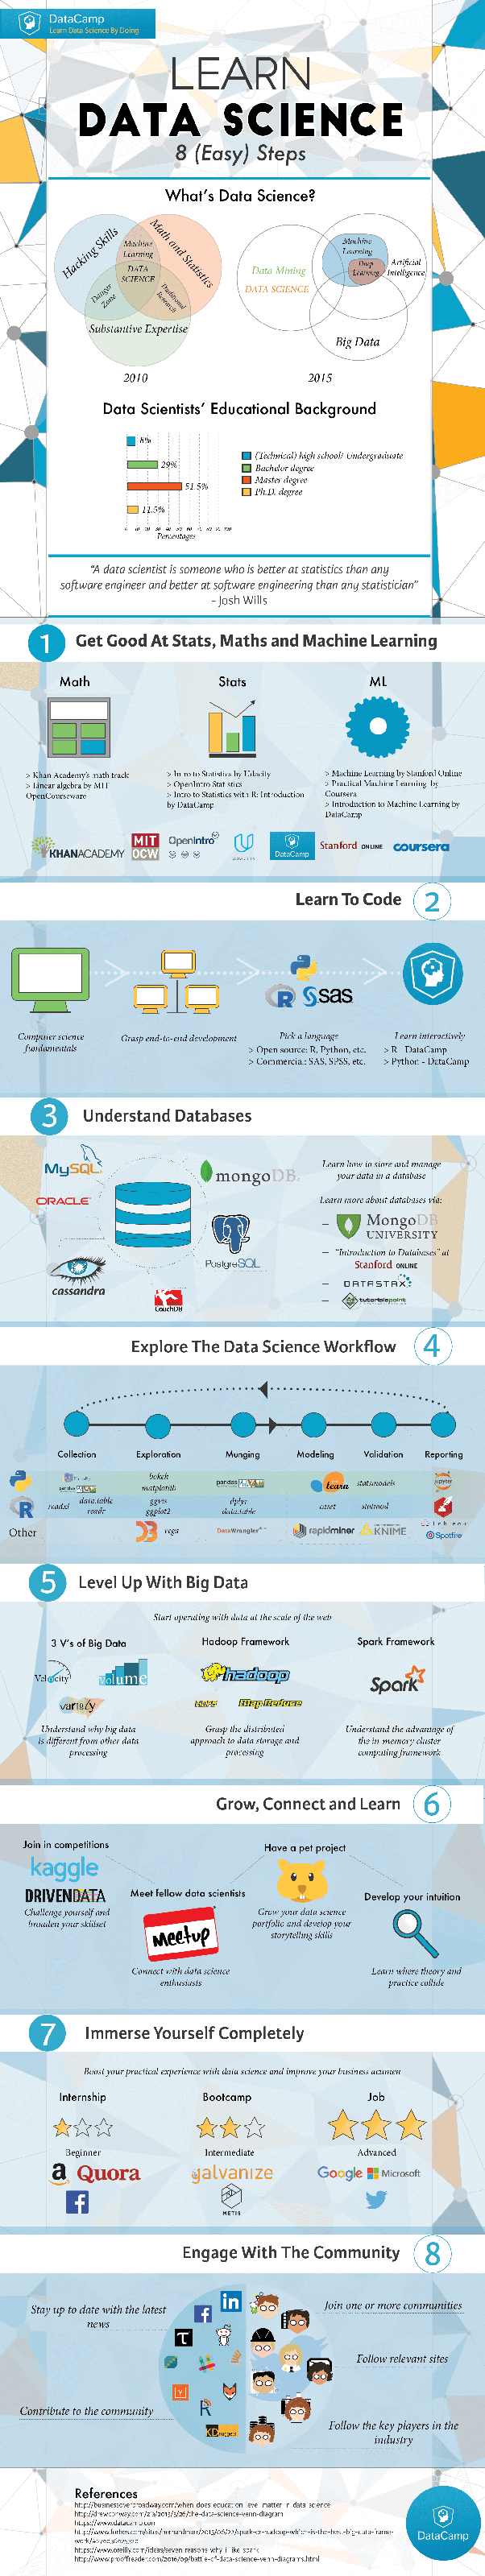 Which is the best online site to learn data science: EdX, DataCamp